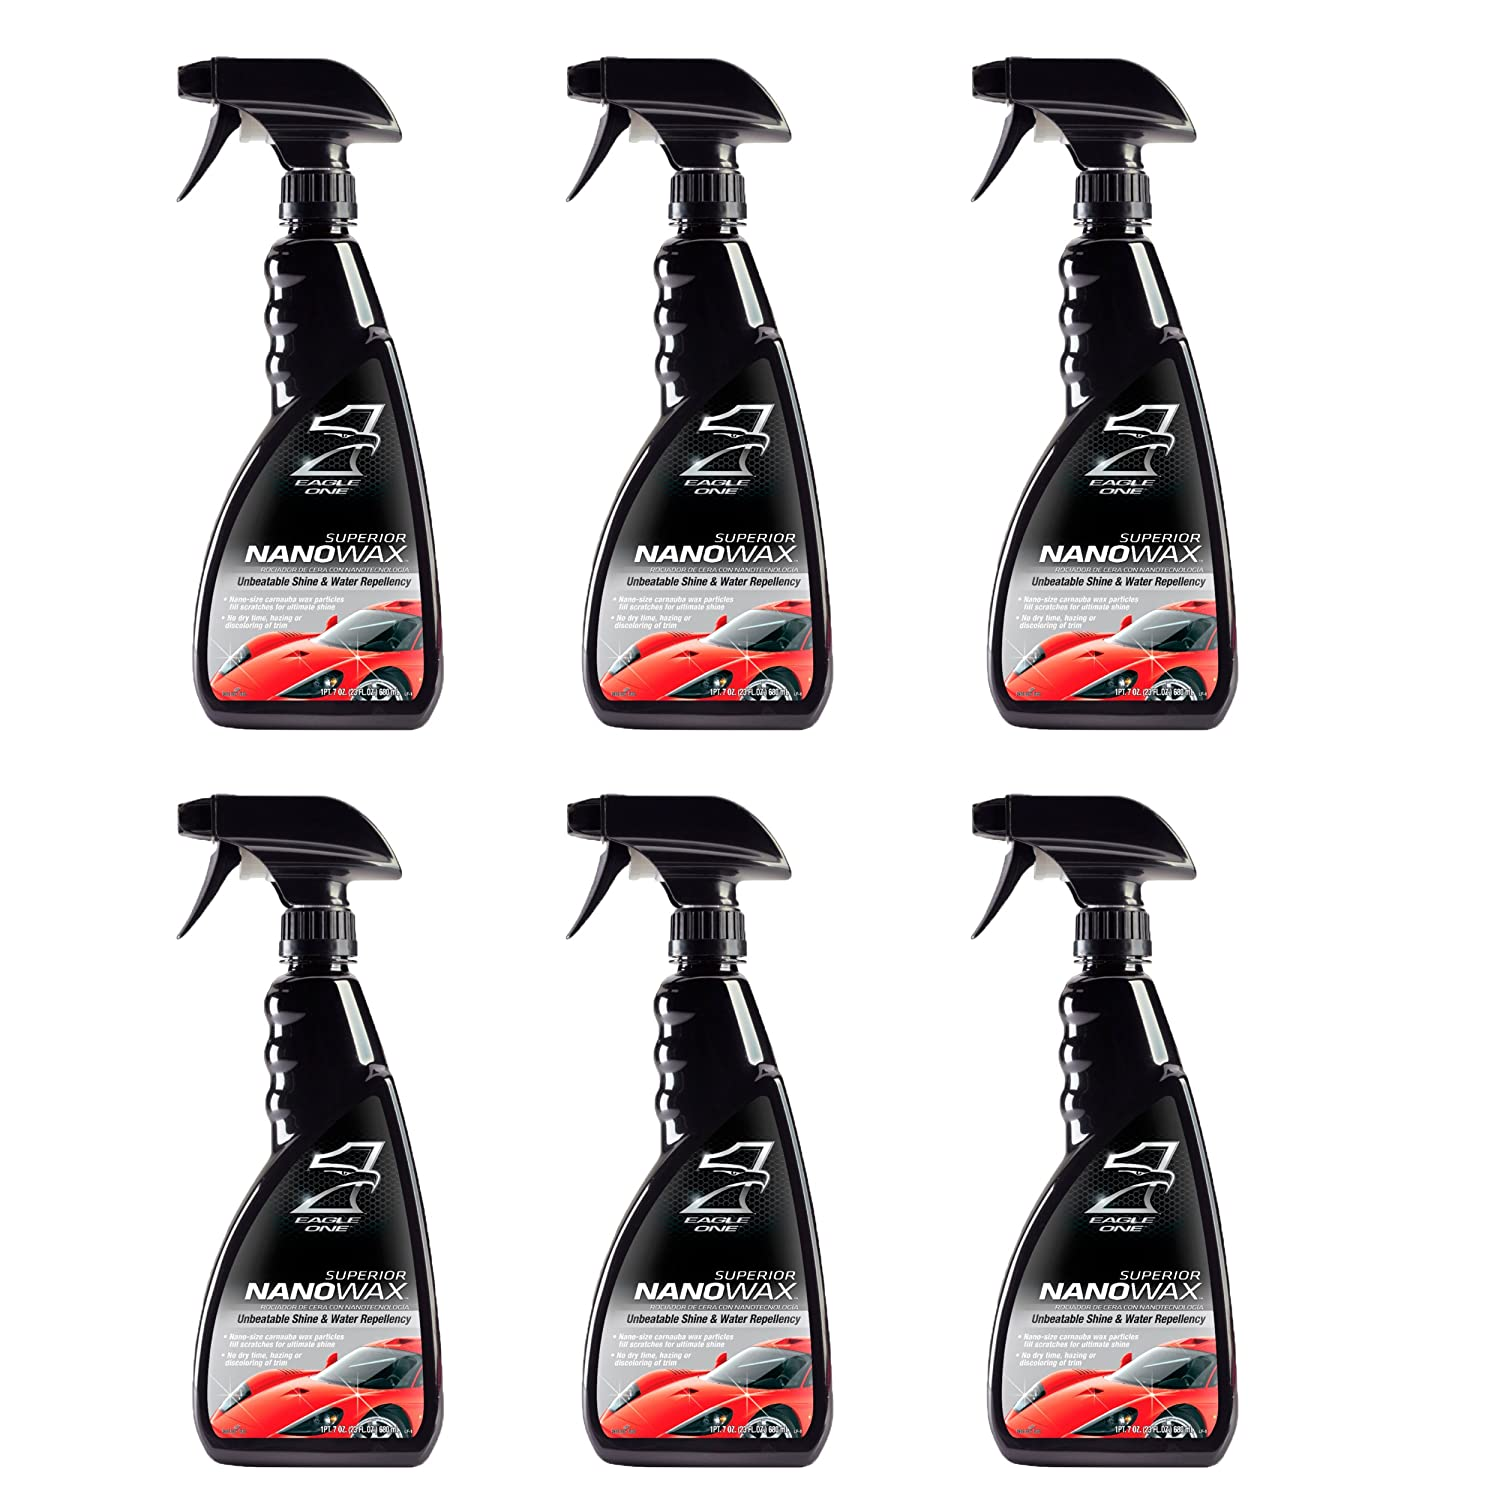 Amazon.com: Eagle One836609-CASE Superior Nano wax - 23 oz, (Case of 6): Automotive